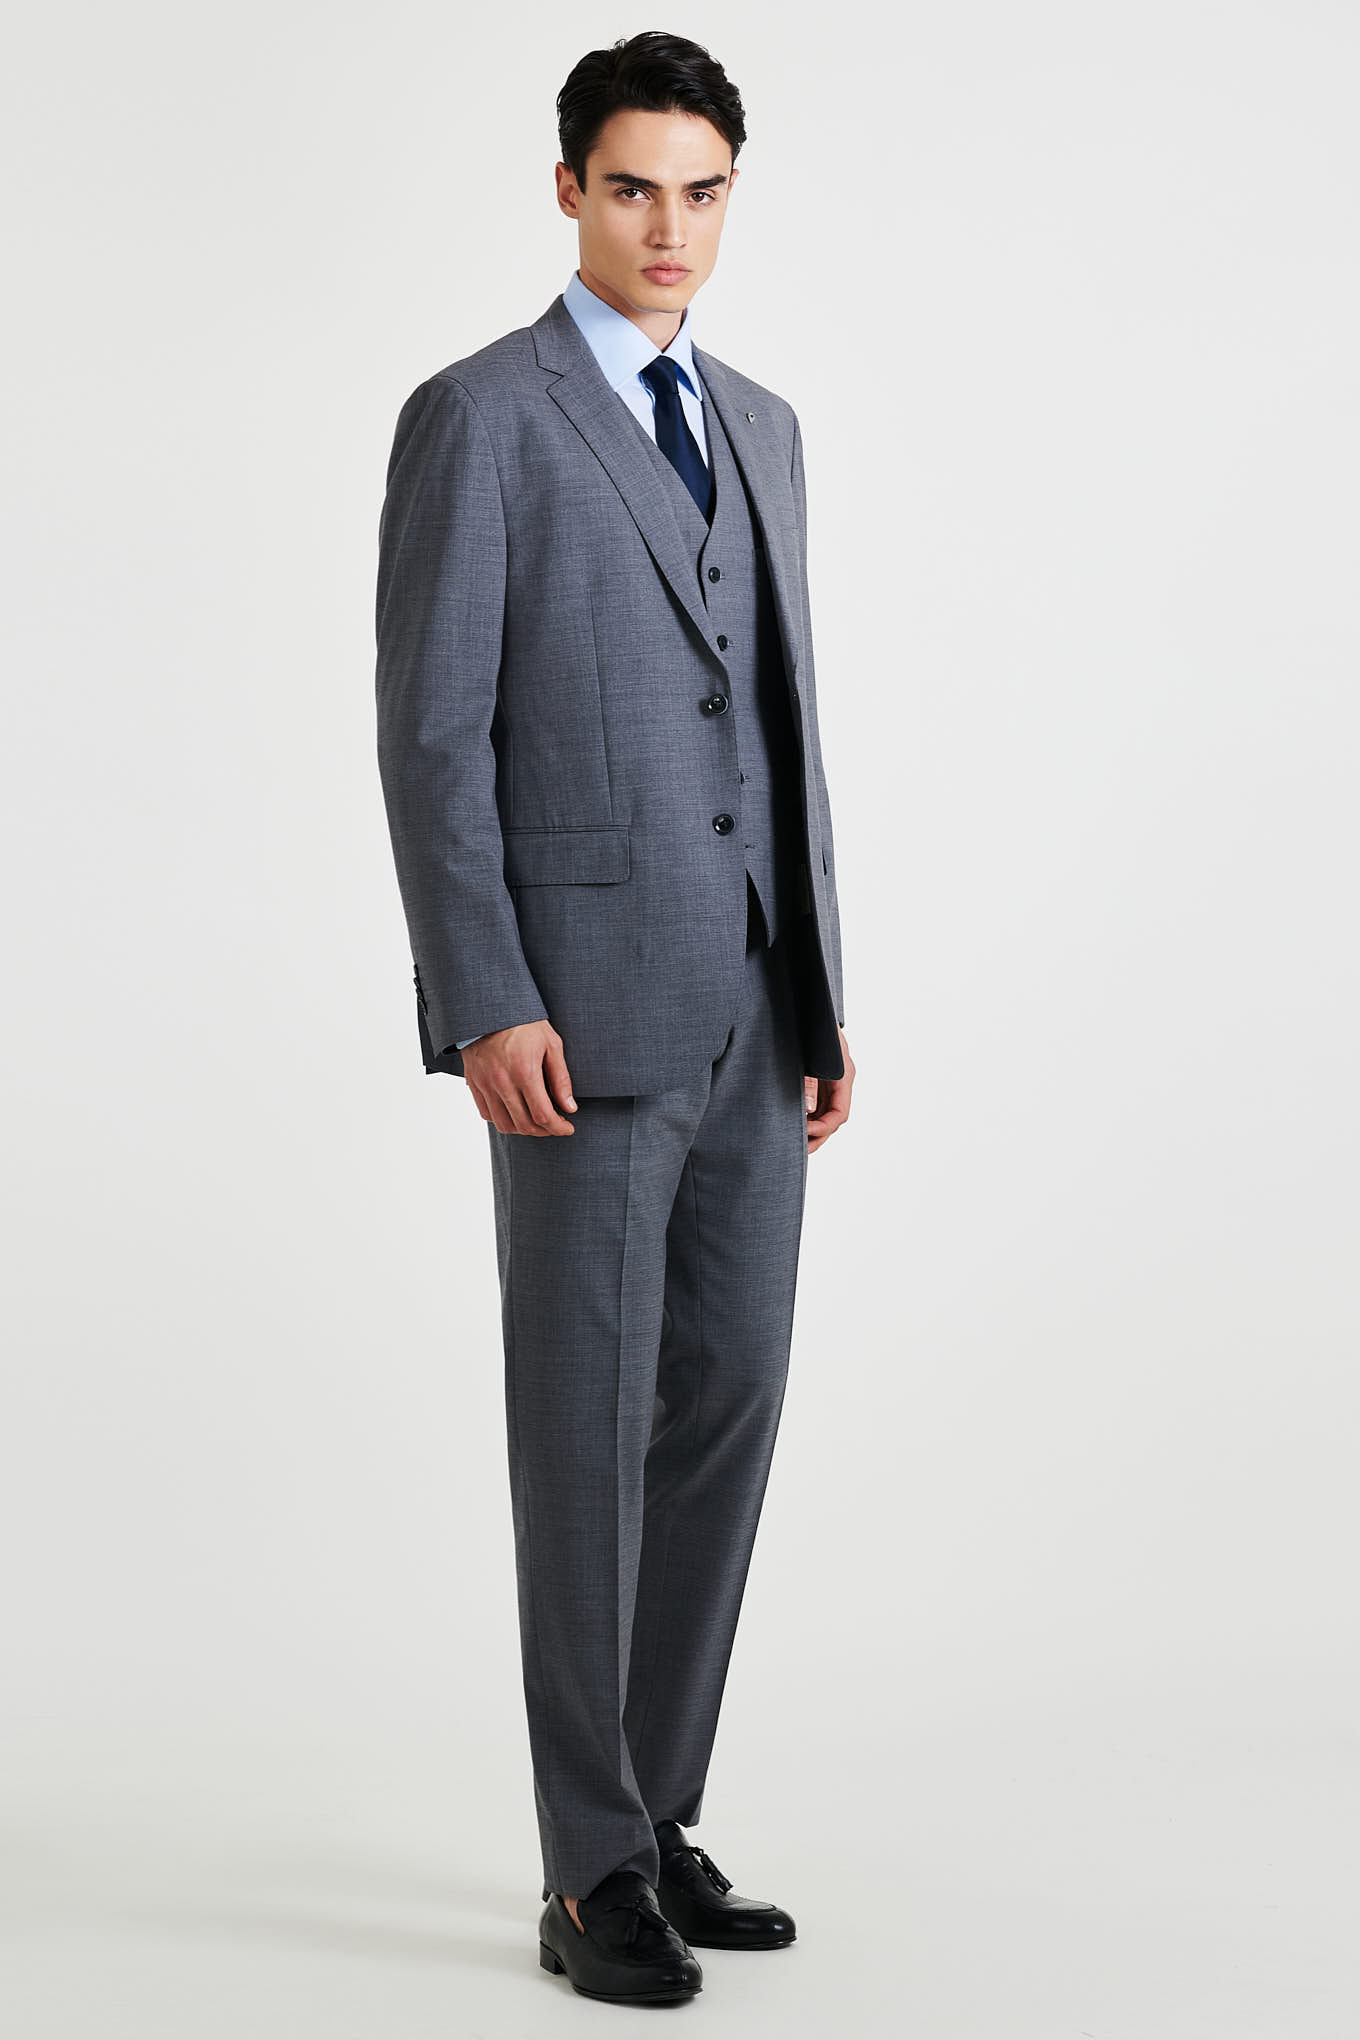 Suit Medium Grey Classic Man